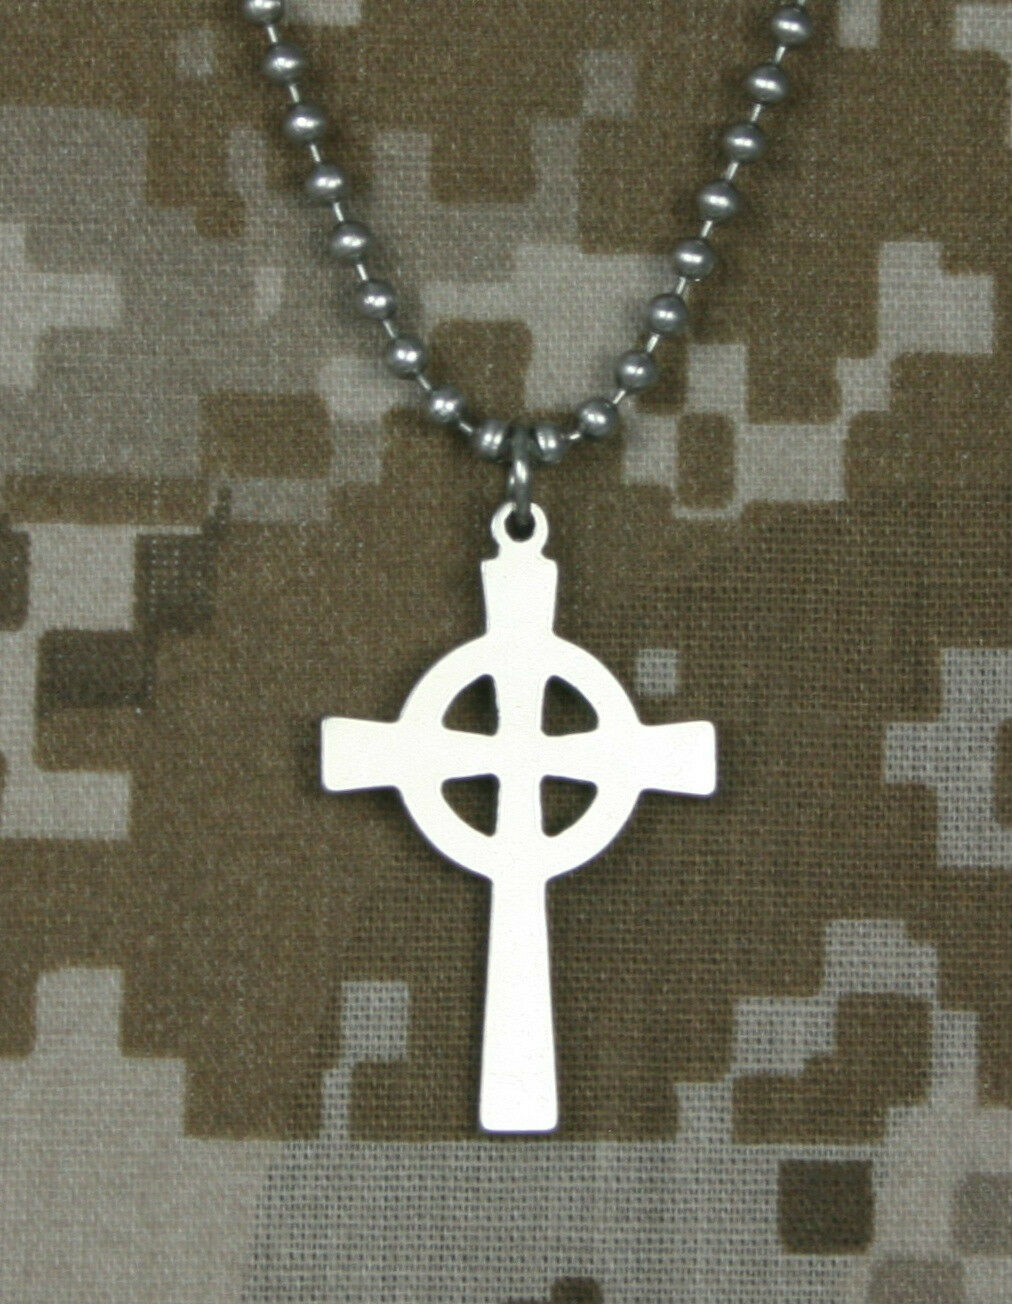 official u s military celtic cross gi jewelry stainless. Black Bedroom Furniture Sets. Home Design Ideas